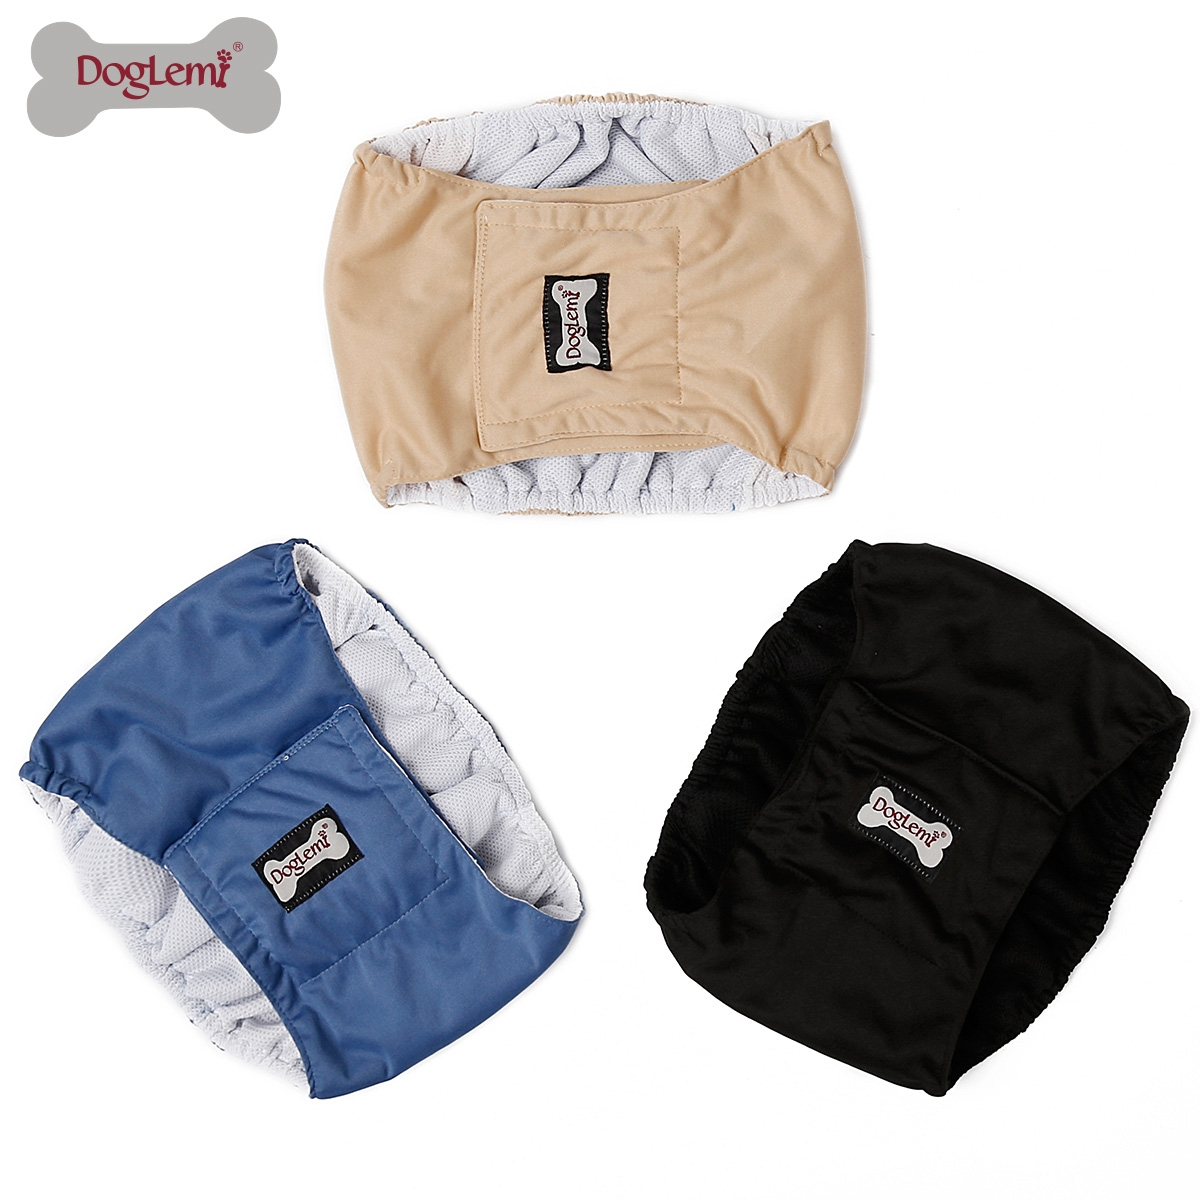 male-dog-washable-diaper